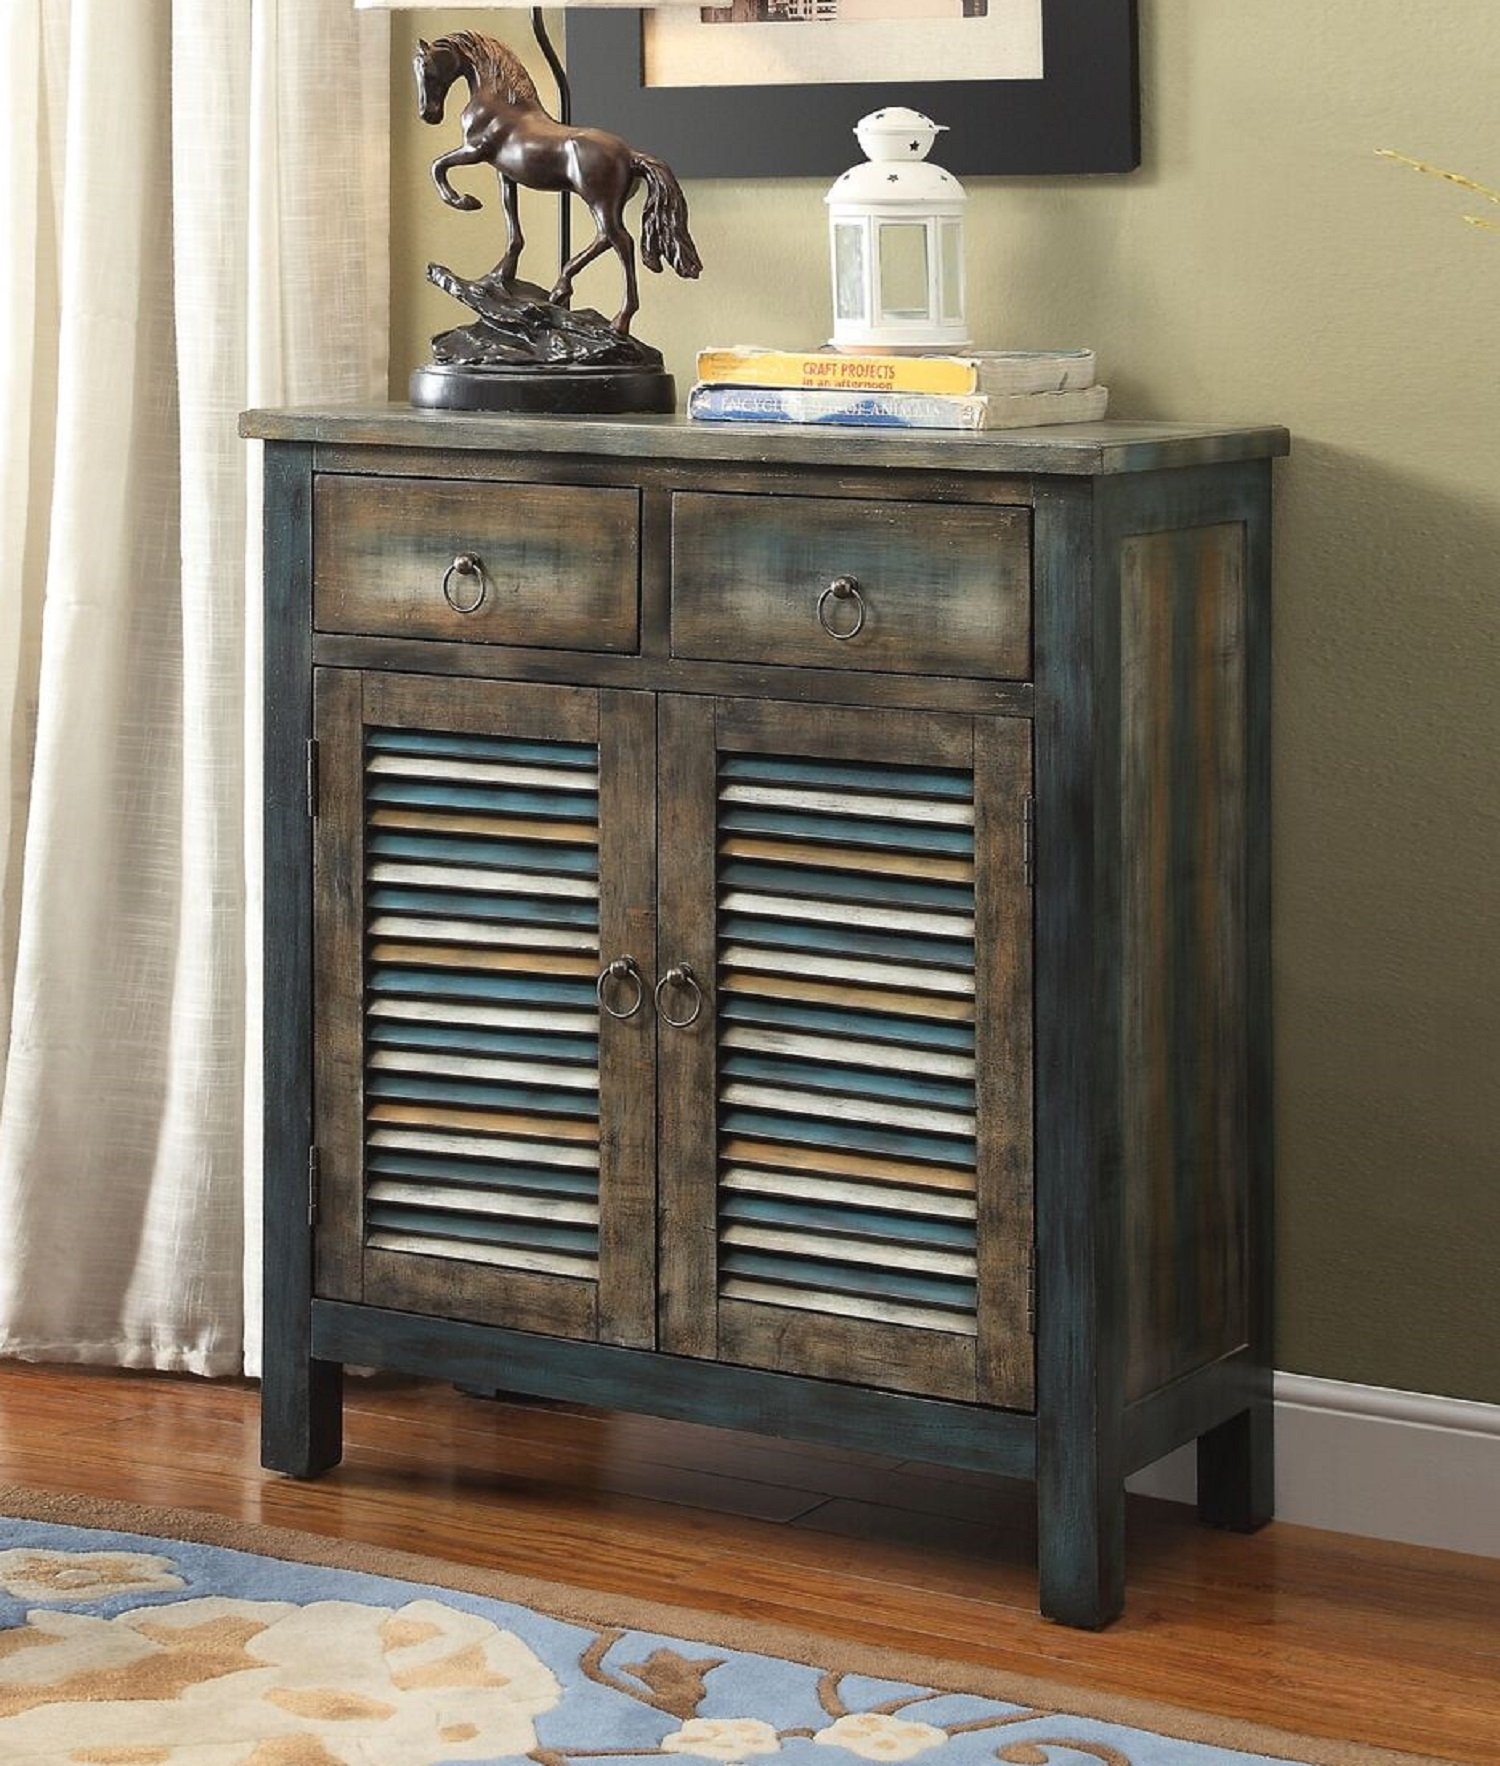 "Major-Q 9097253 35"" H Vintage Style Rectangular Antique Oak Teal Finish 2-Drawer 2-Door Wooden Console Table - Major-Q is a registered furniture trademark brand. Please search Major-Q for more high quality furniture related products All Major-Q Products will be covered with Limited Major-Q Warranty. Please buy with confidence. Console Table, 32"" x 15"" x 35""H - tv-stands, living-room-furniture, living-room - 81BVQ9 LQ7L -"